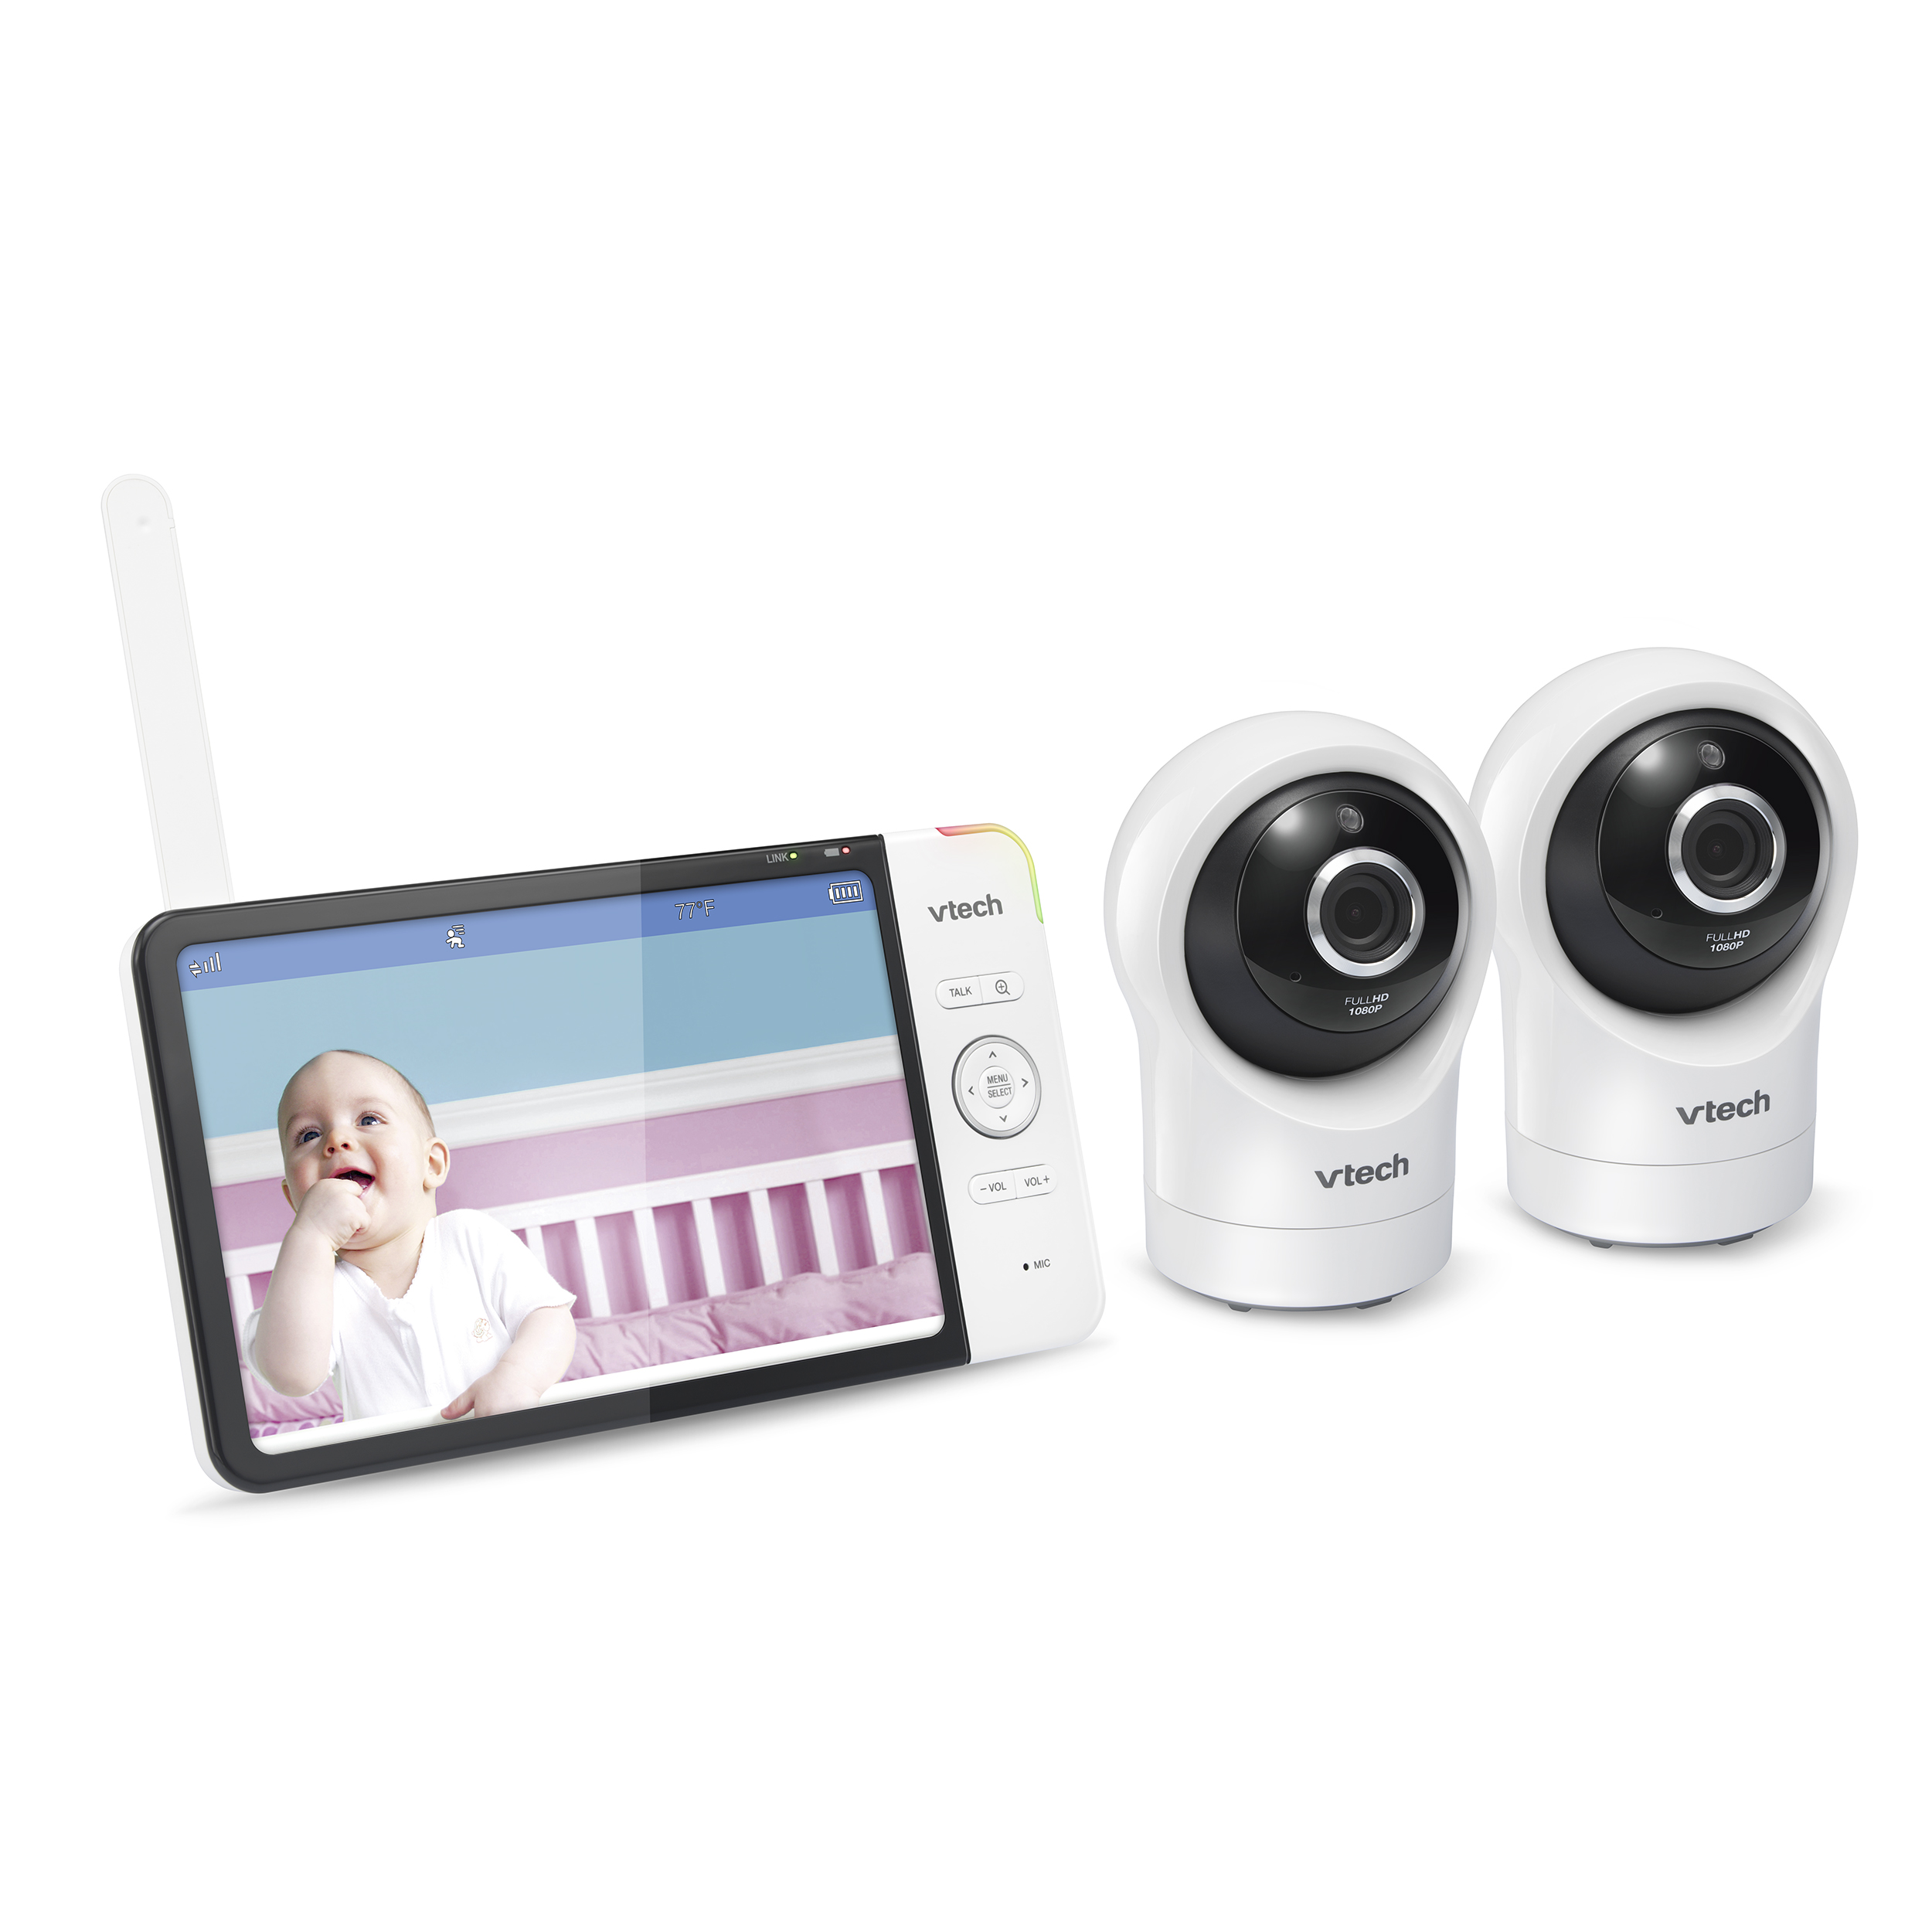 Wi-Fi Remote Access 2 Camera Video Baby Monitor with 7